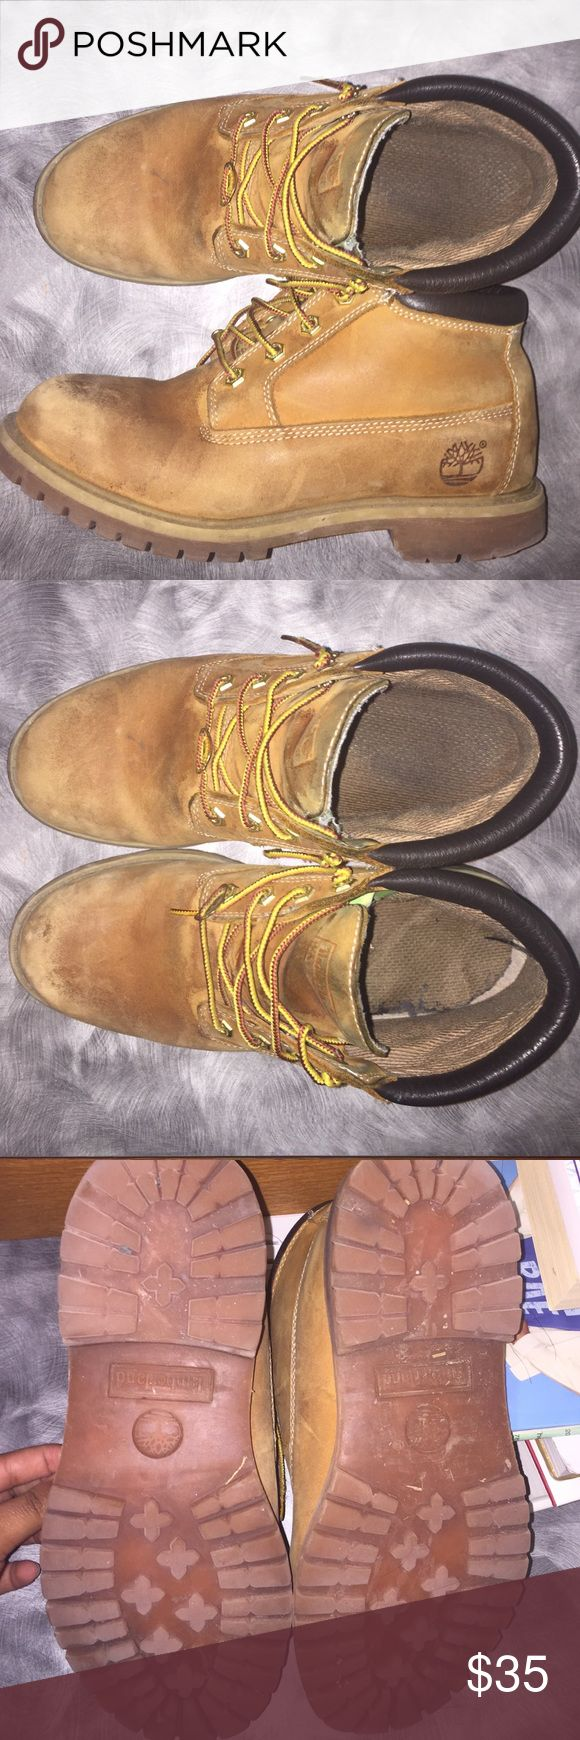 Timberland Nellie Women's In poor condition can be used as workboots Timberland Shoes Ankle Boots & Booties